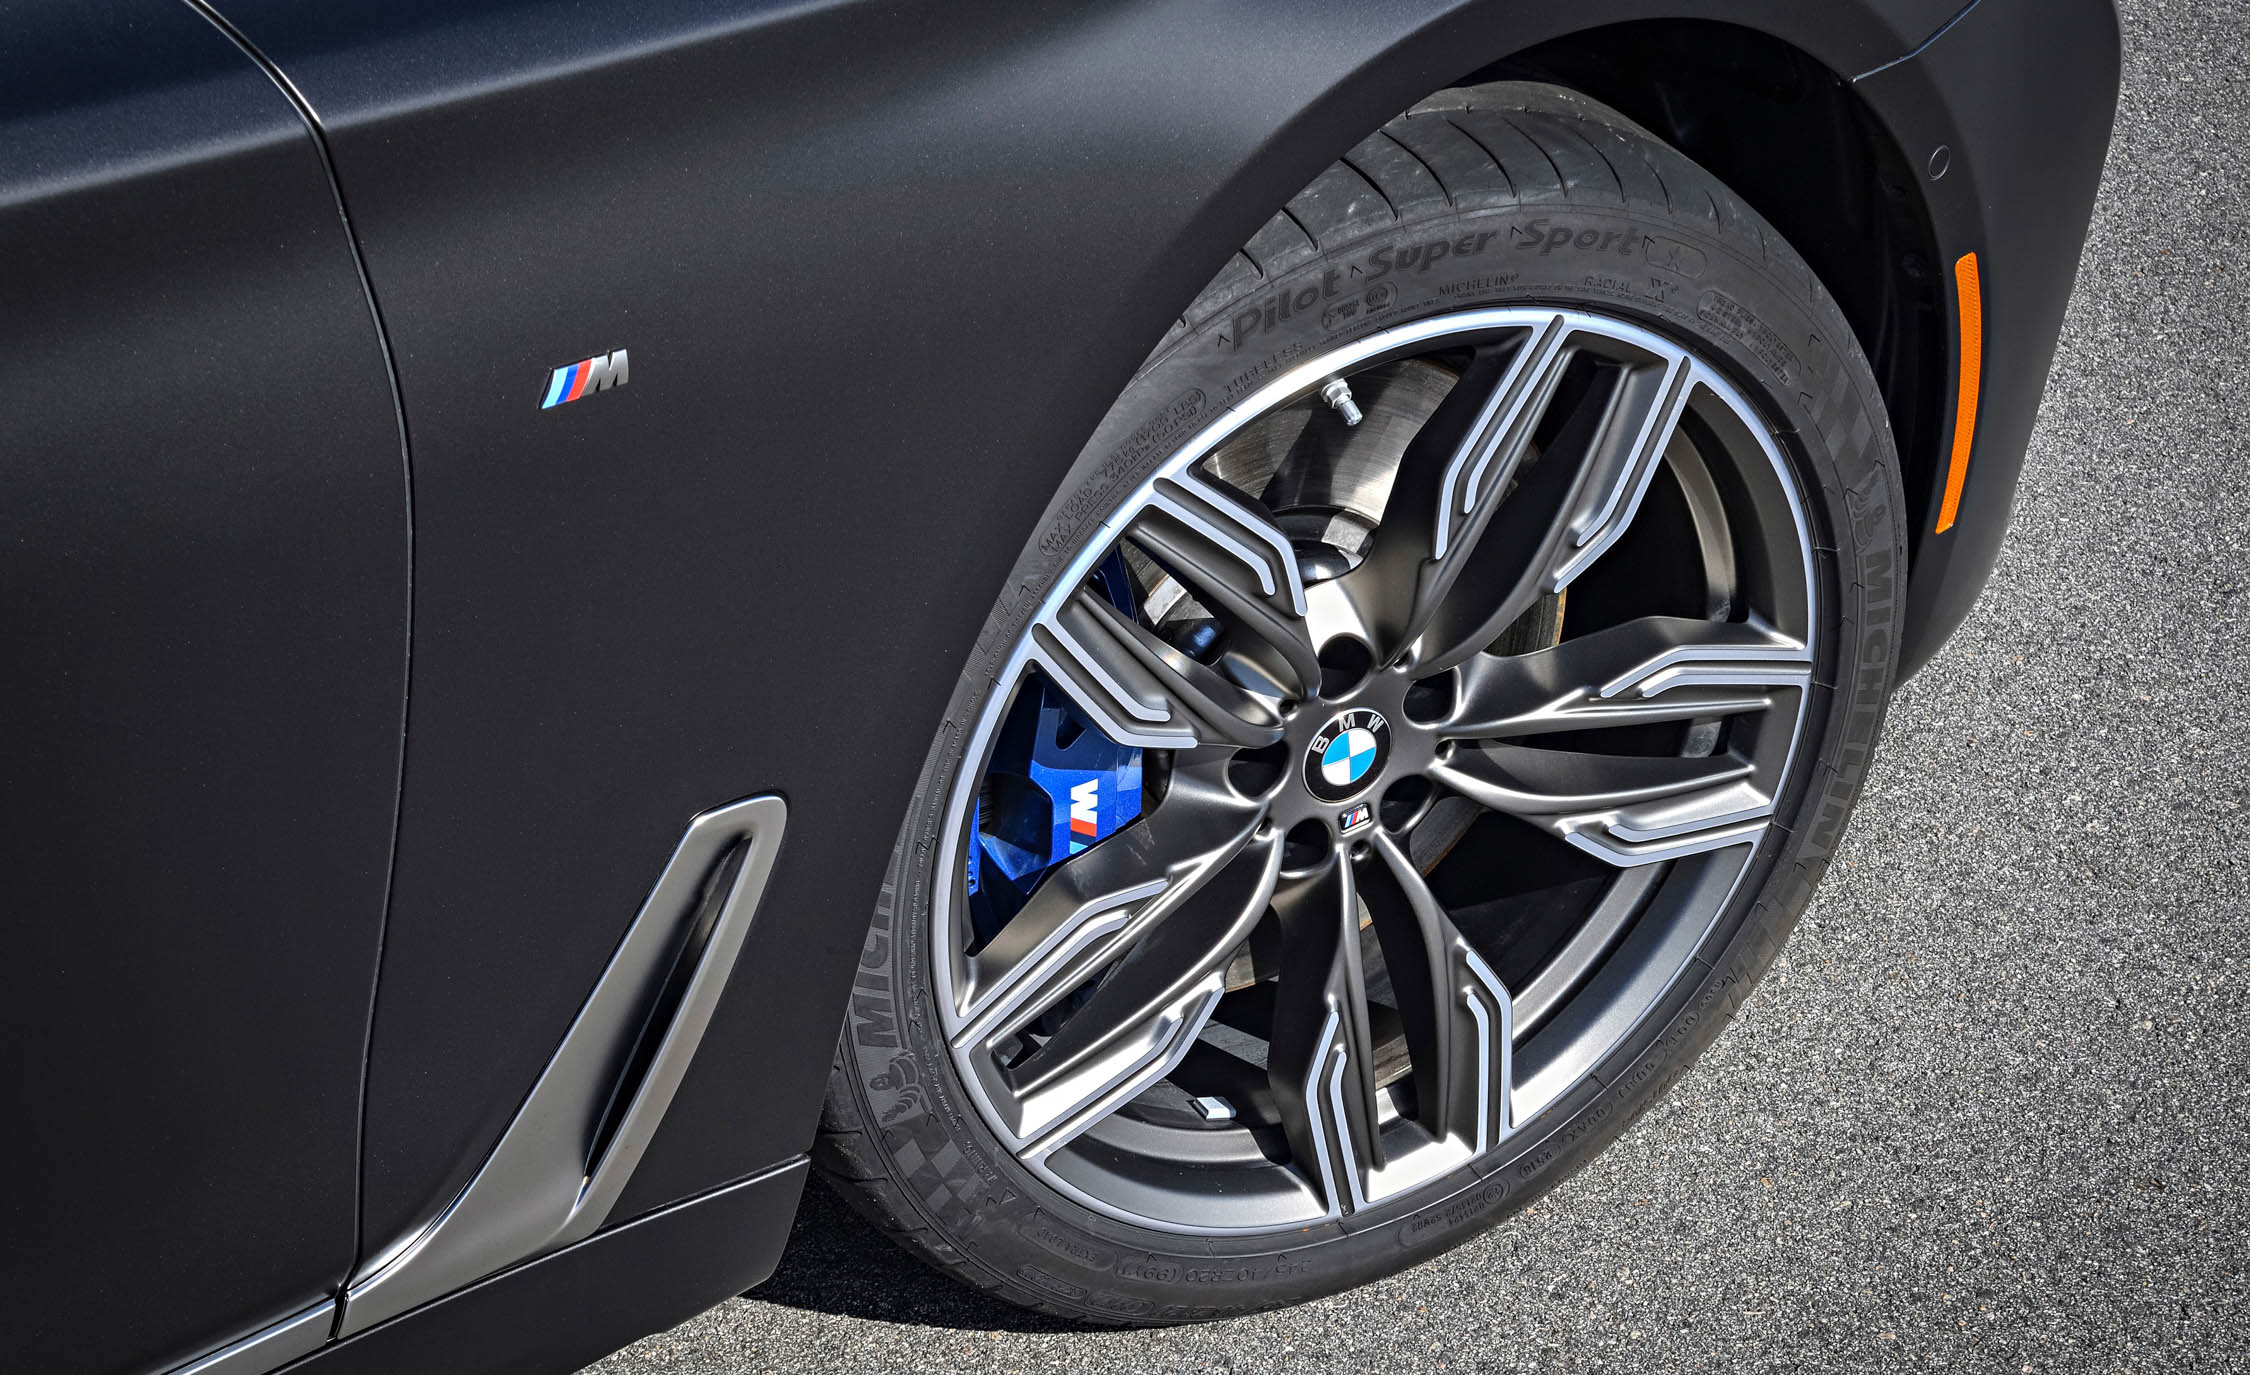 2017 BMW M760i XDrive Exterior View Wheel And Velg (Photo 27 of 76)